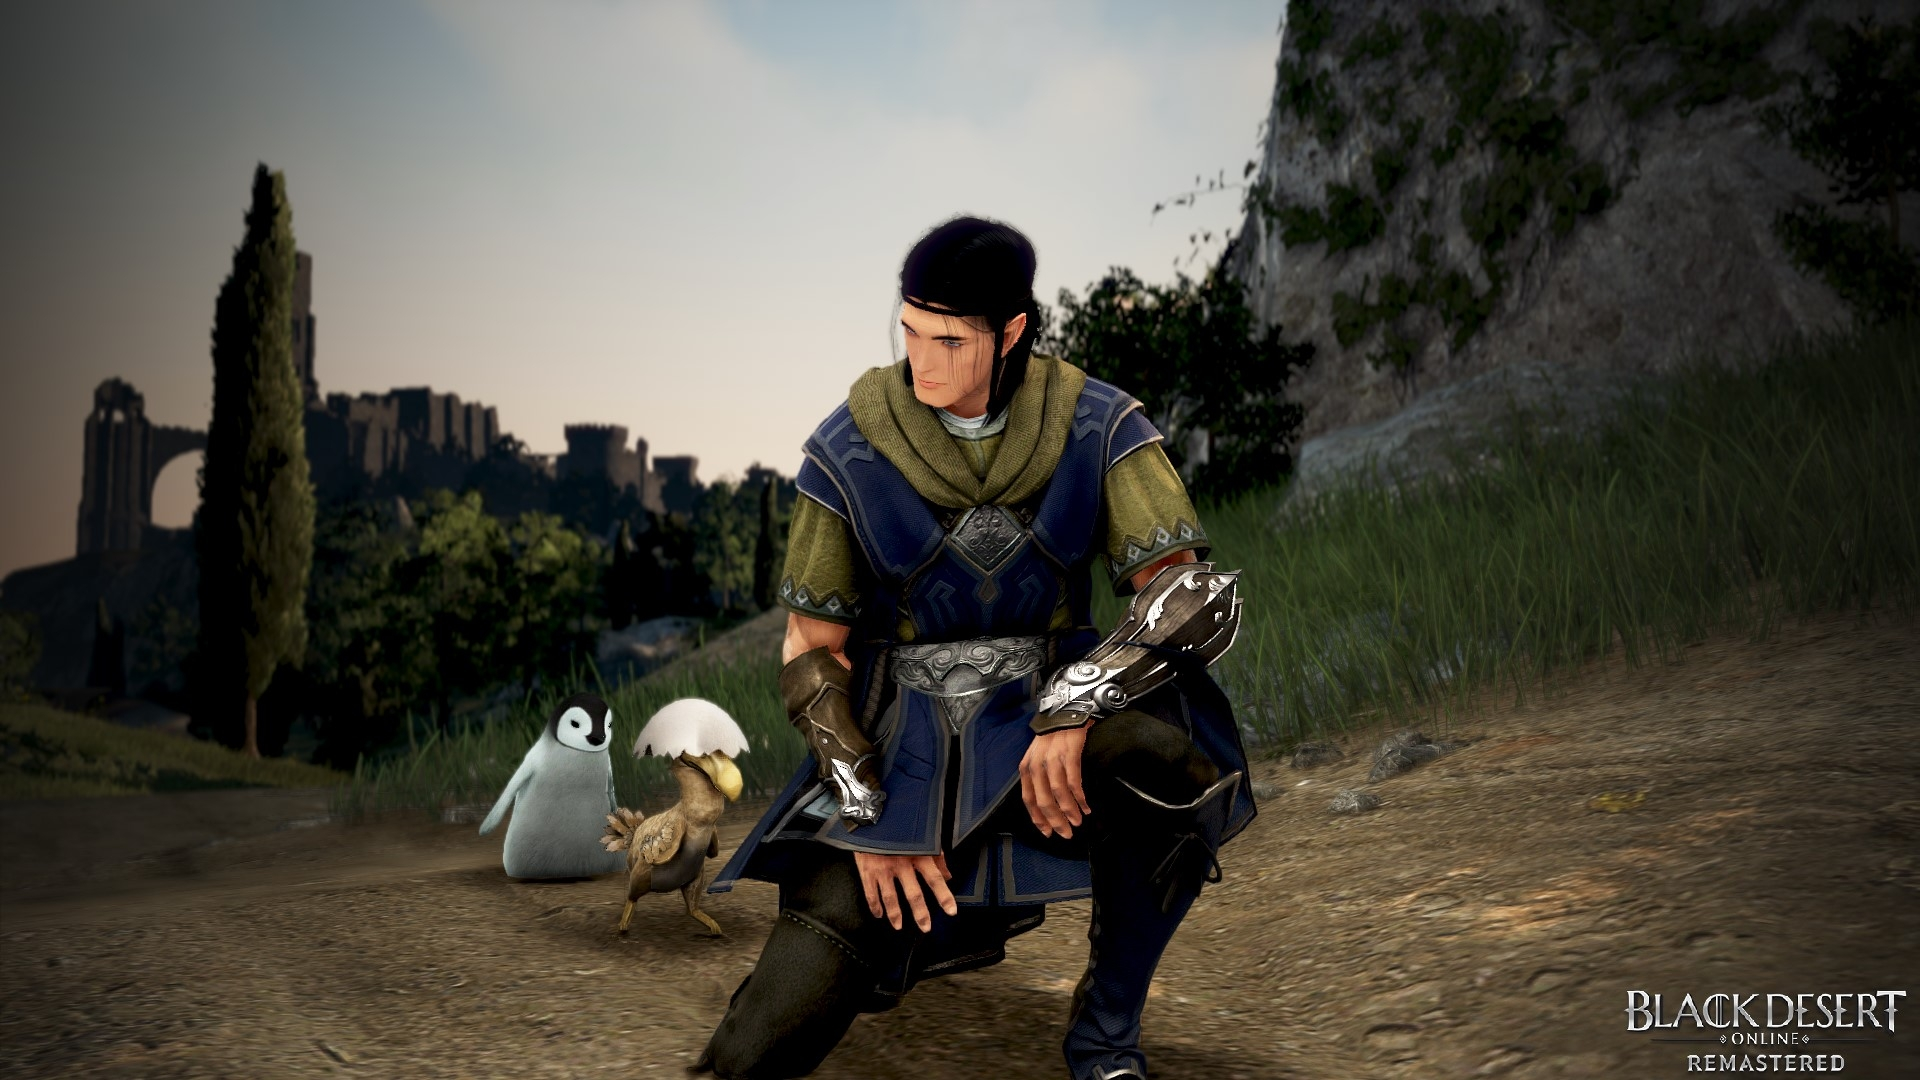 Shooting Stuff with the Black Desert Online Archer - MMORPG com